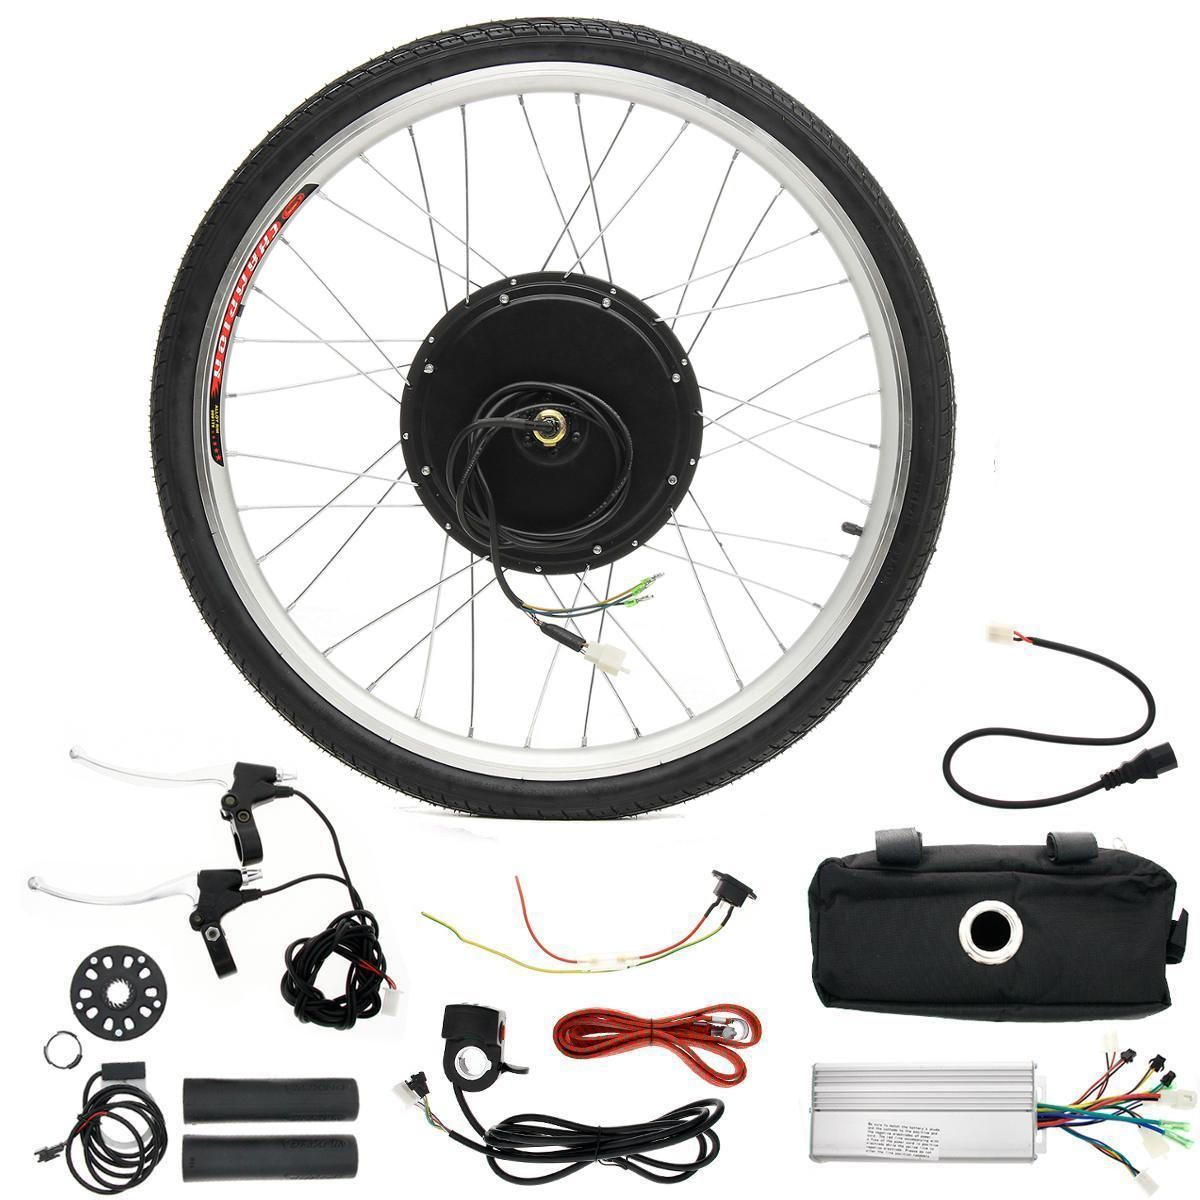 Lcd 48v 1000w 26inch Hight Speed Scooter Electric Bicycle E Bike Hub Motor Conversion Kit Other Vehicle Parts Accessories From Automobiles Motorcycles On Electric Bicycle Ebike Electric Scooter